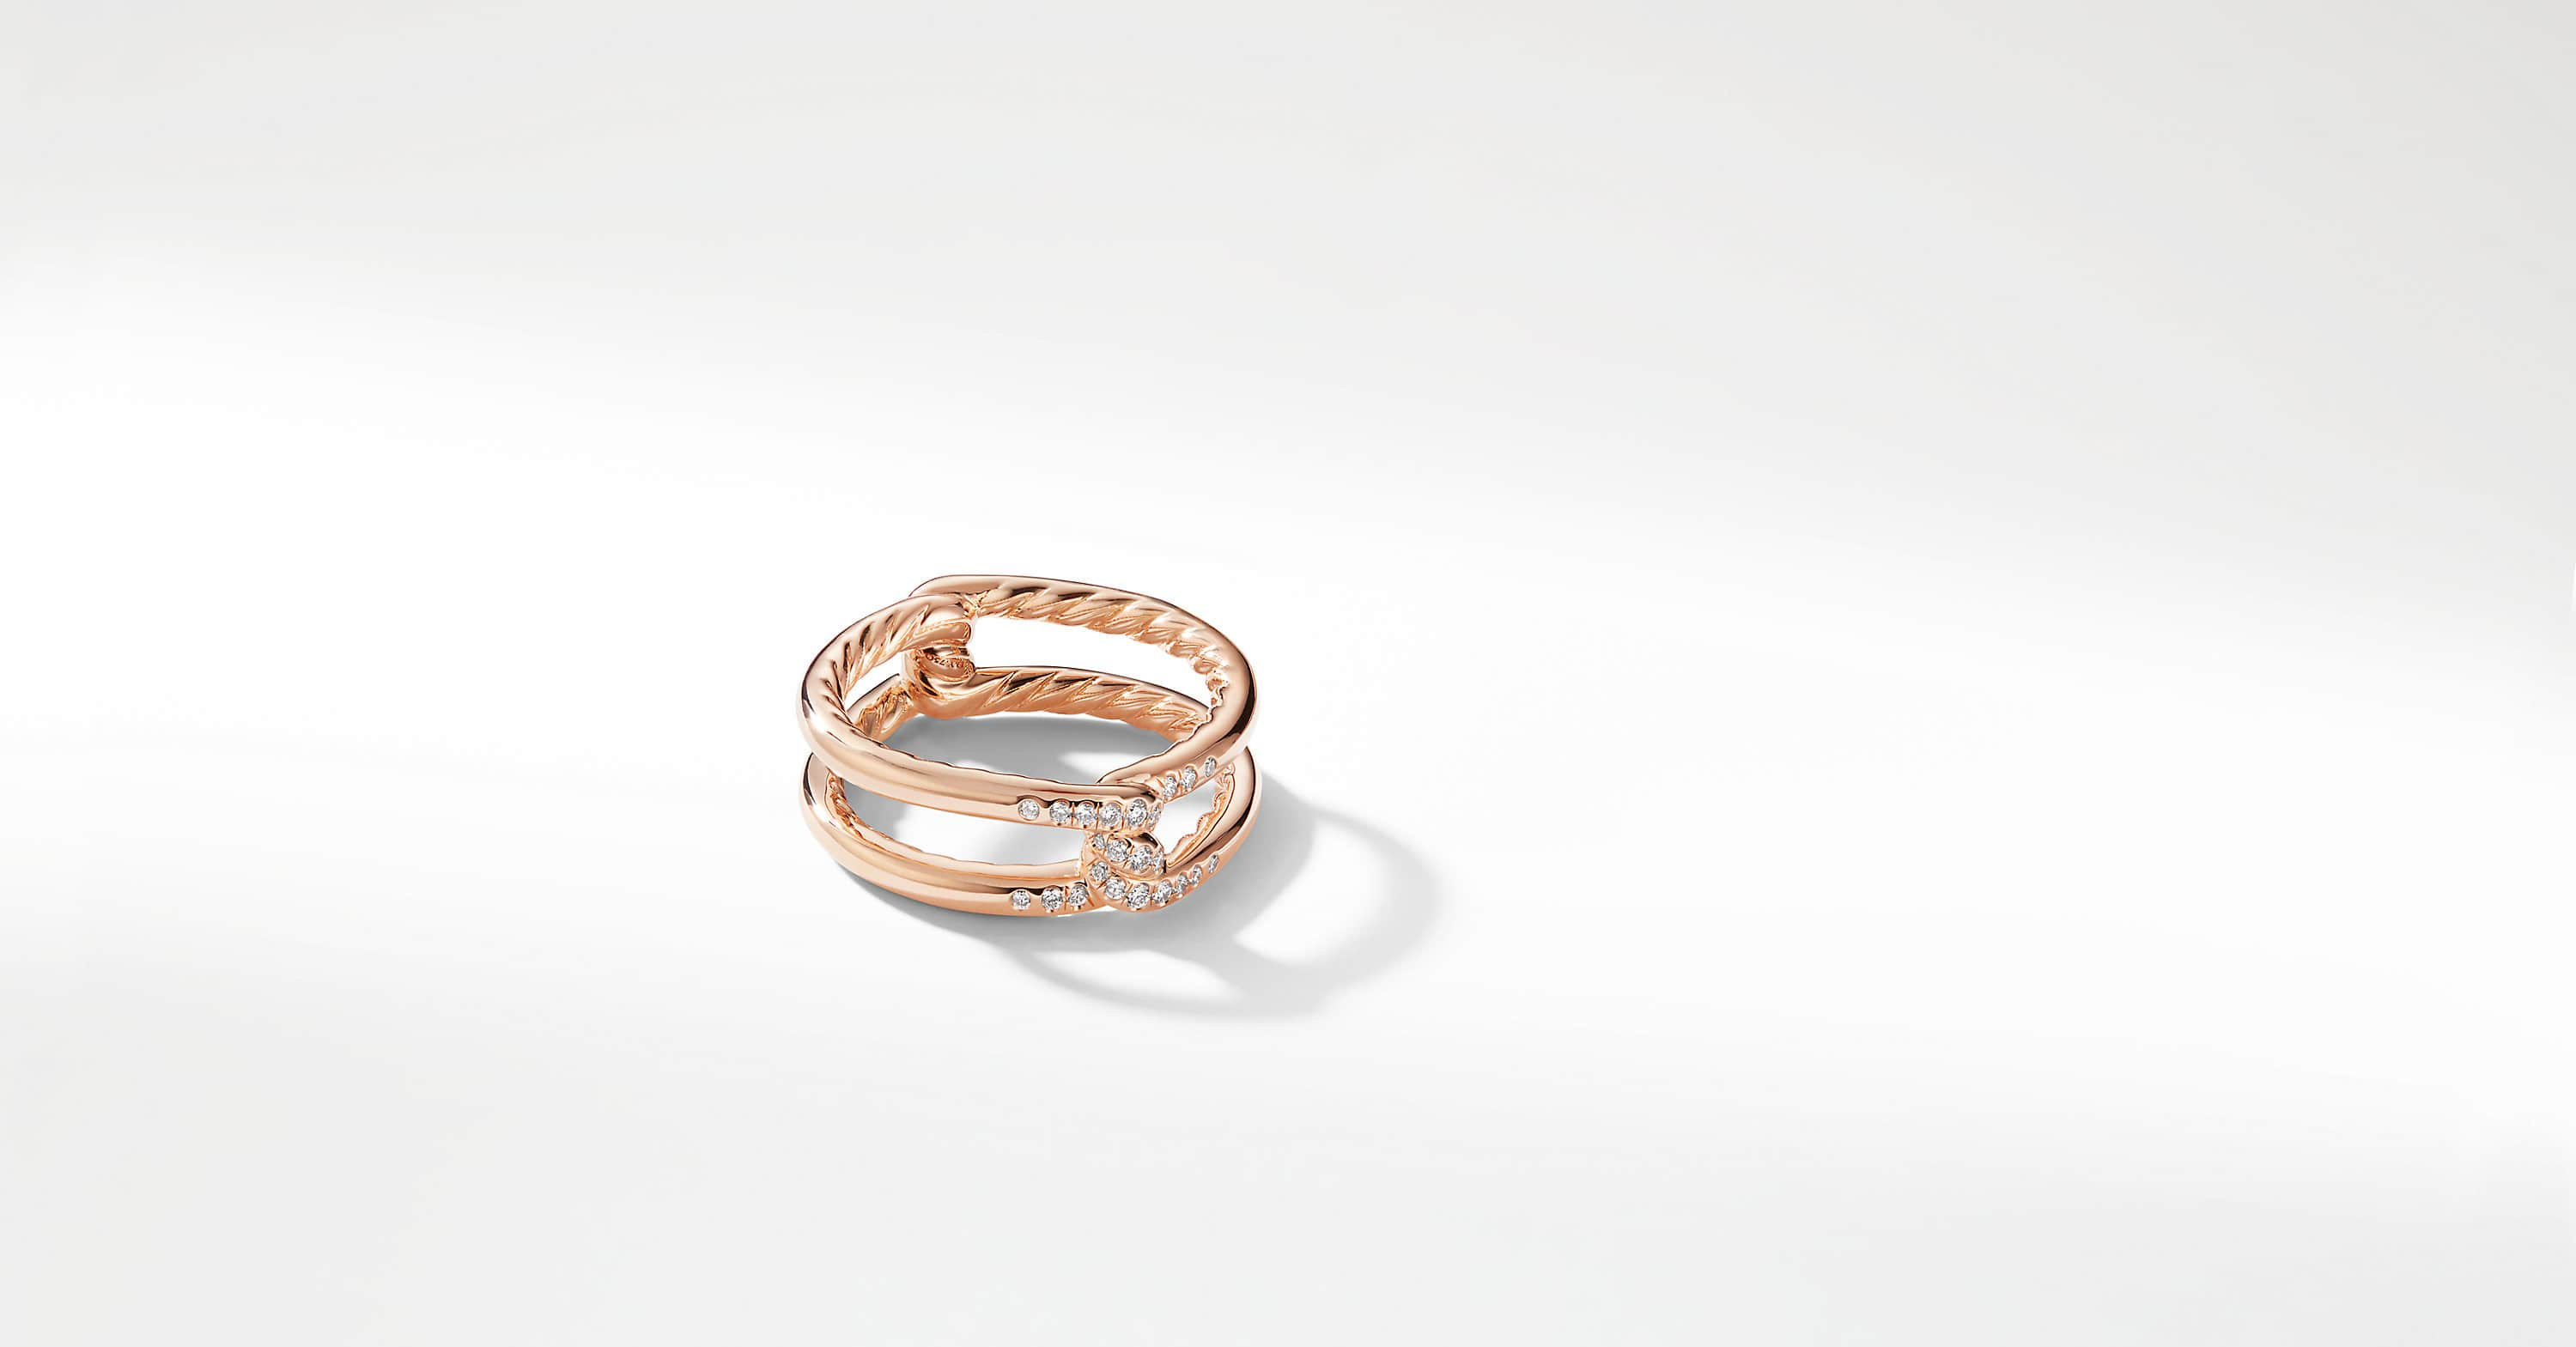 Continuance Band Ring with Diamonds in 18K Rose Gold, 6.5mm